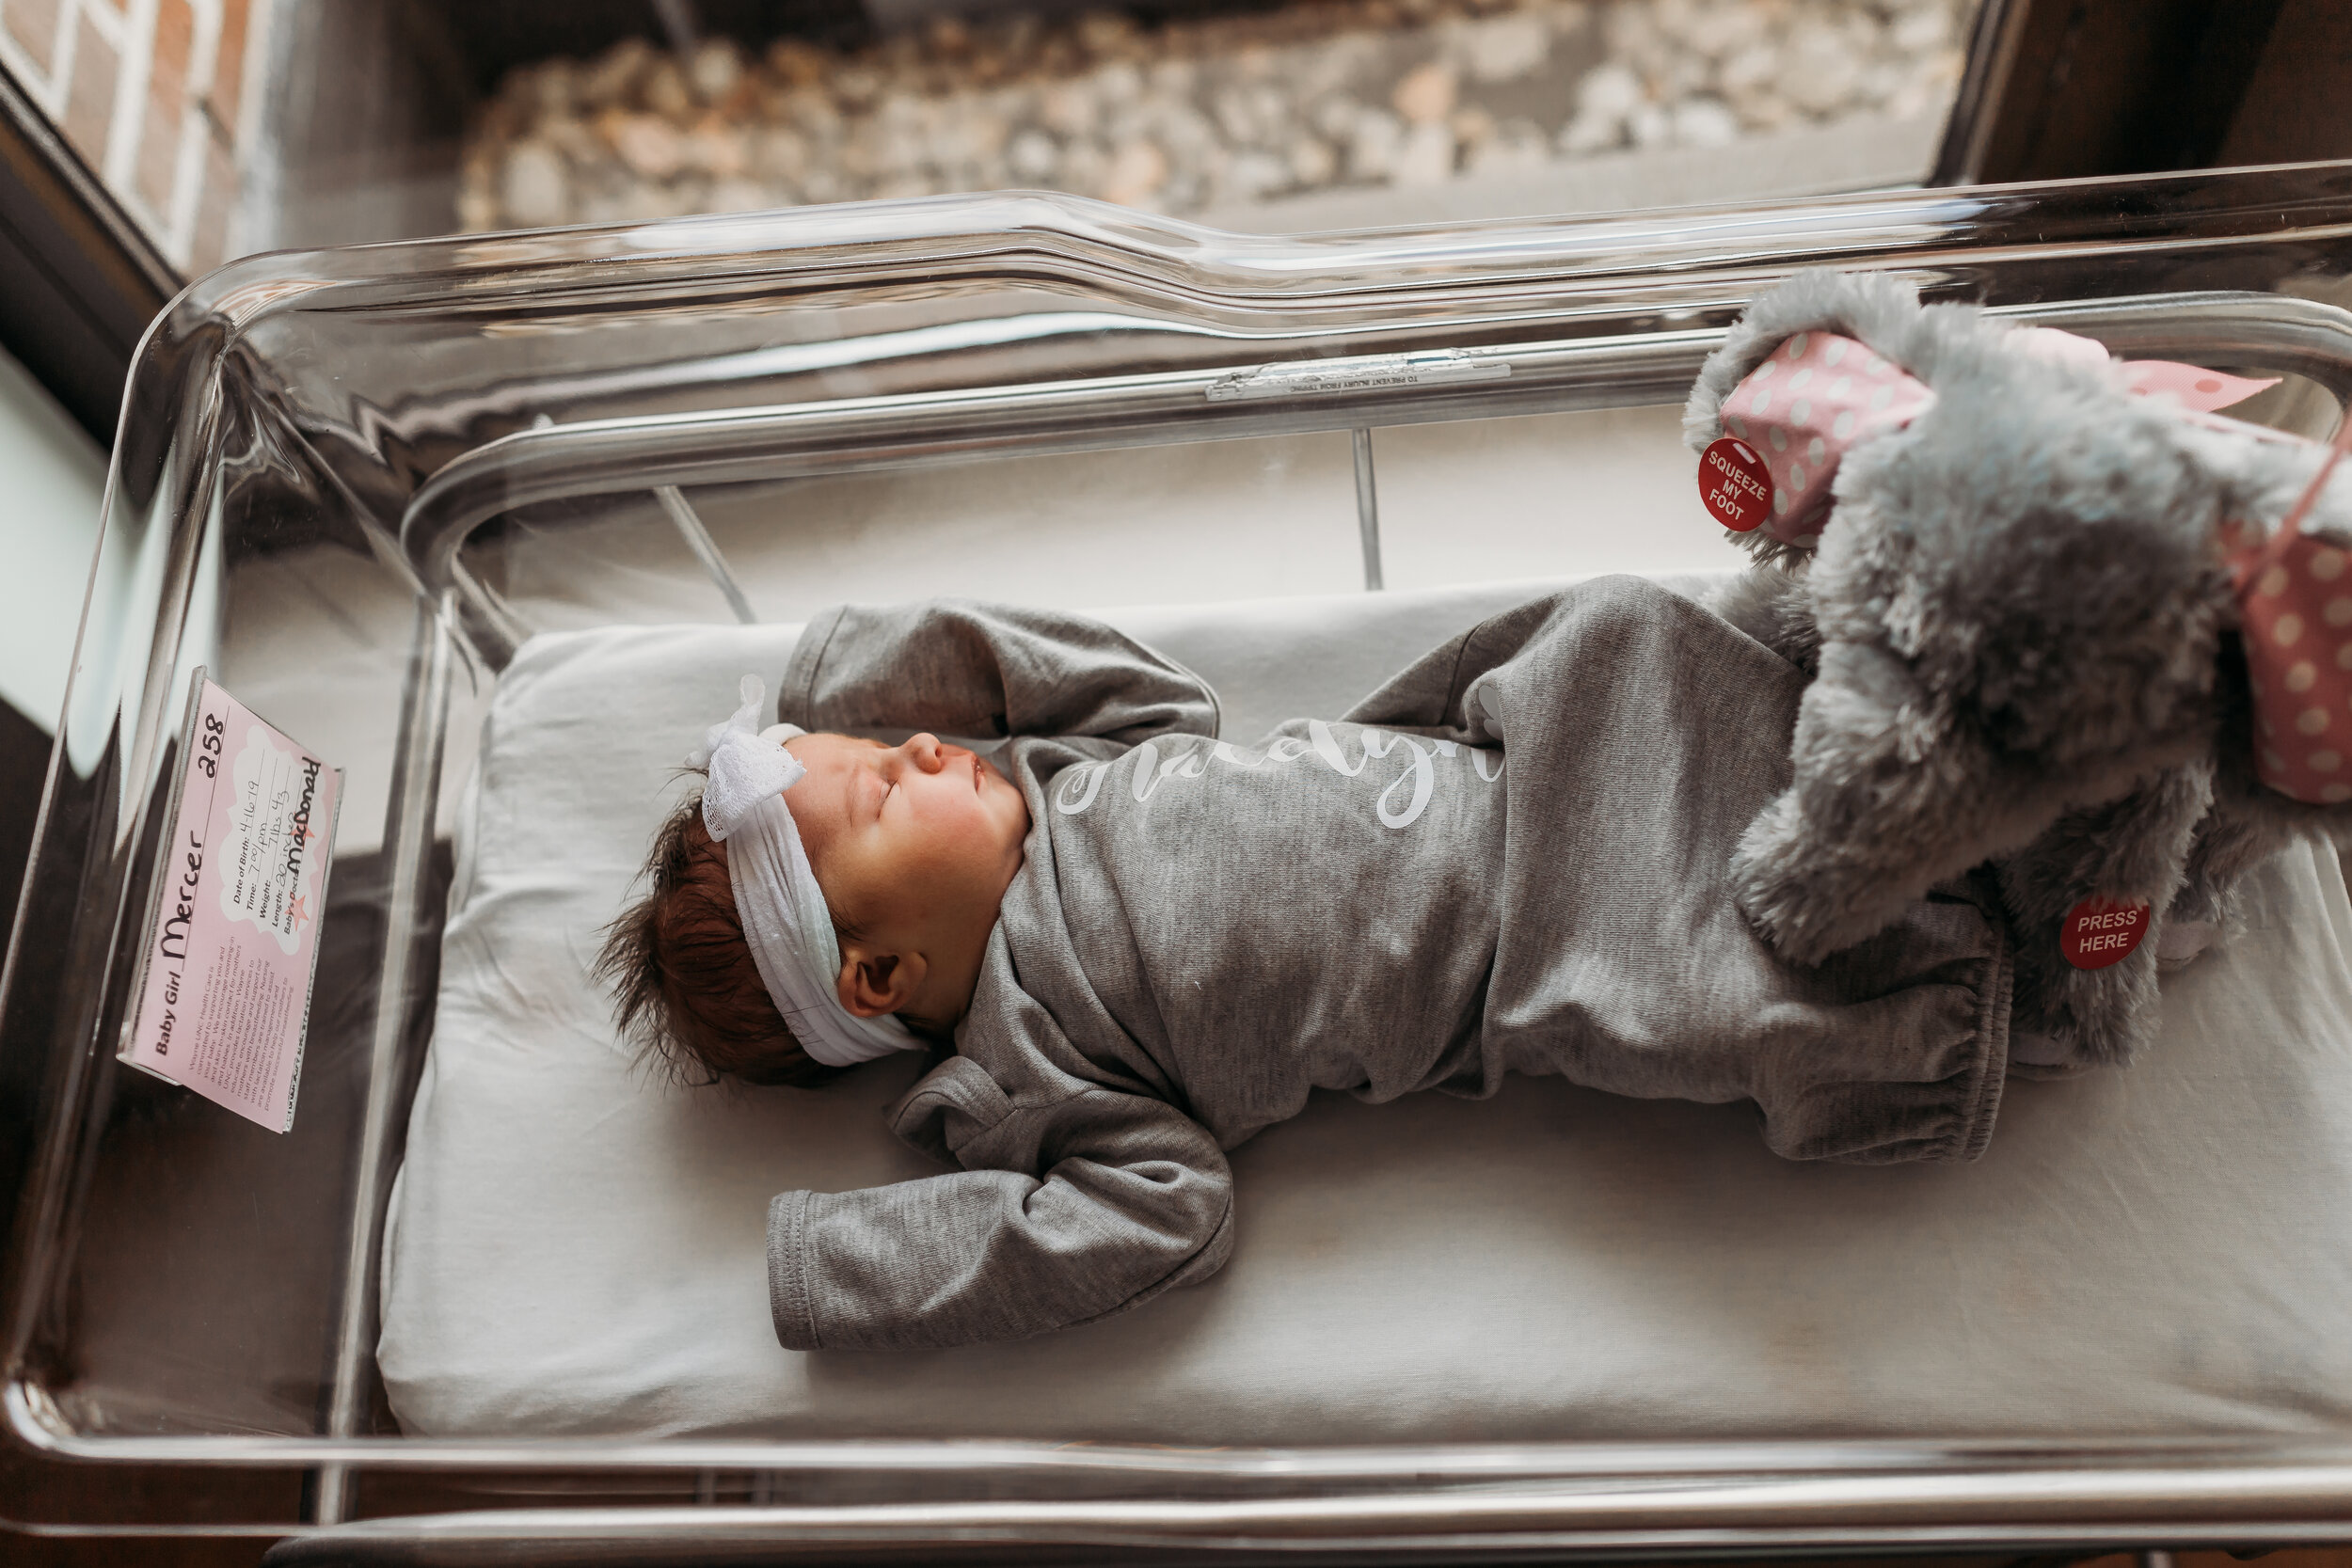 baby in personalized outfit with gift from family